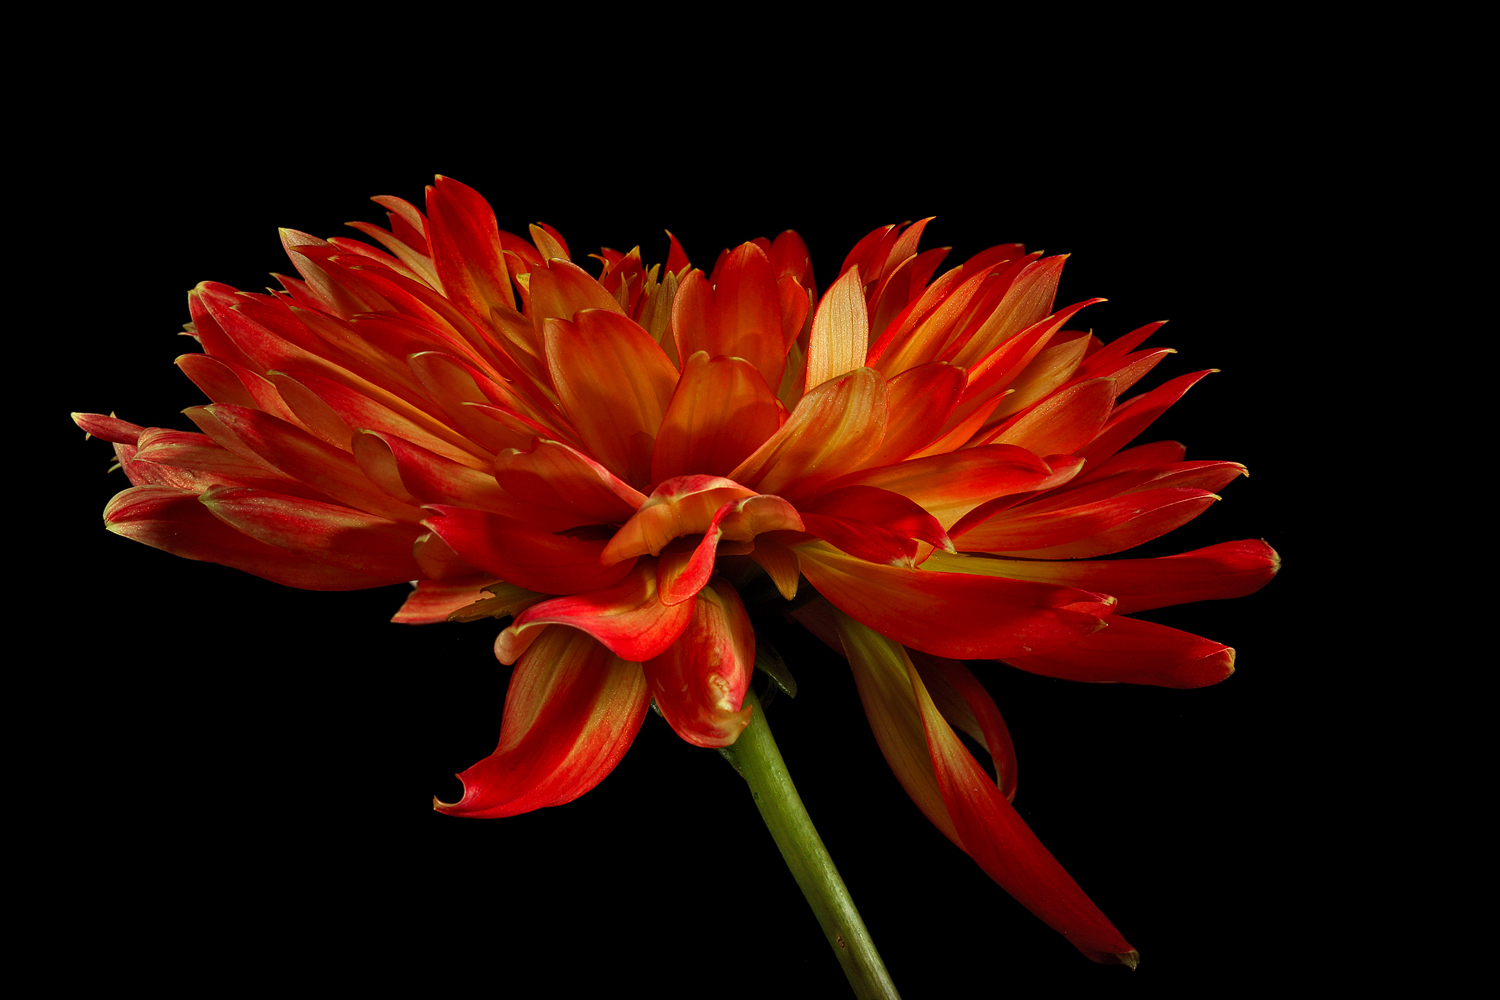 red yellow dahlia side img aw author sava gregory and verena